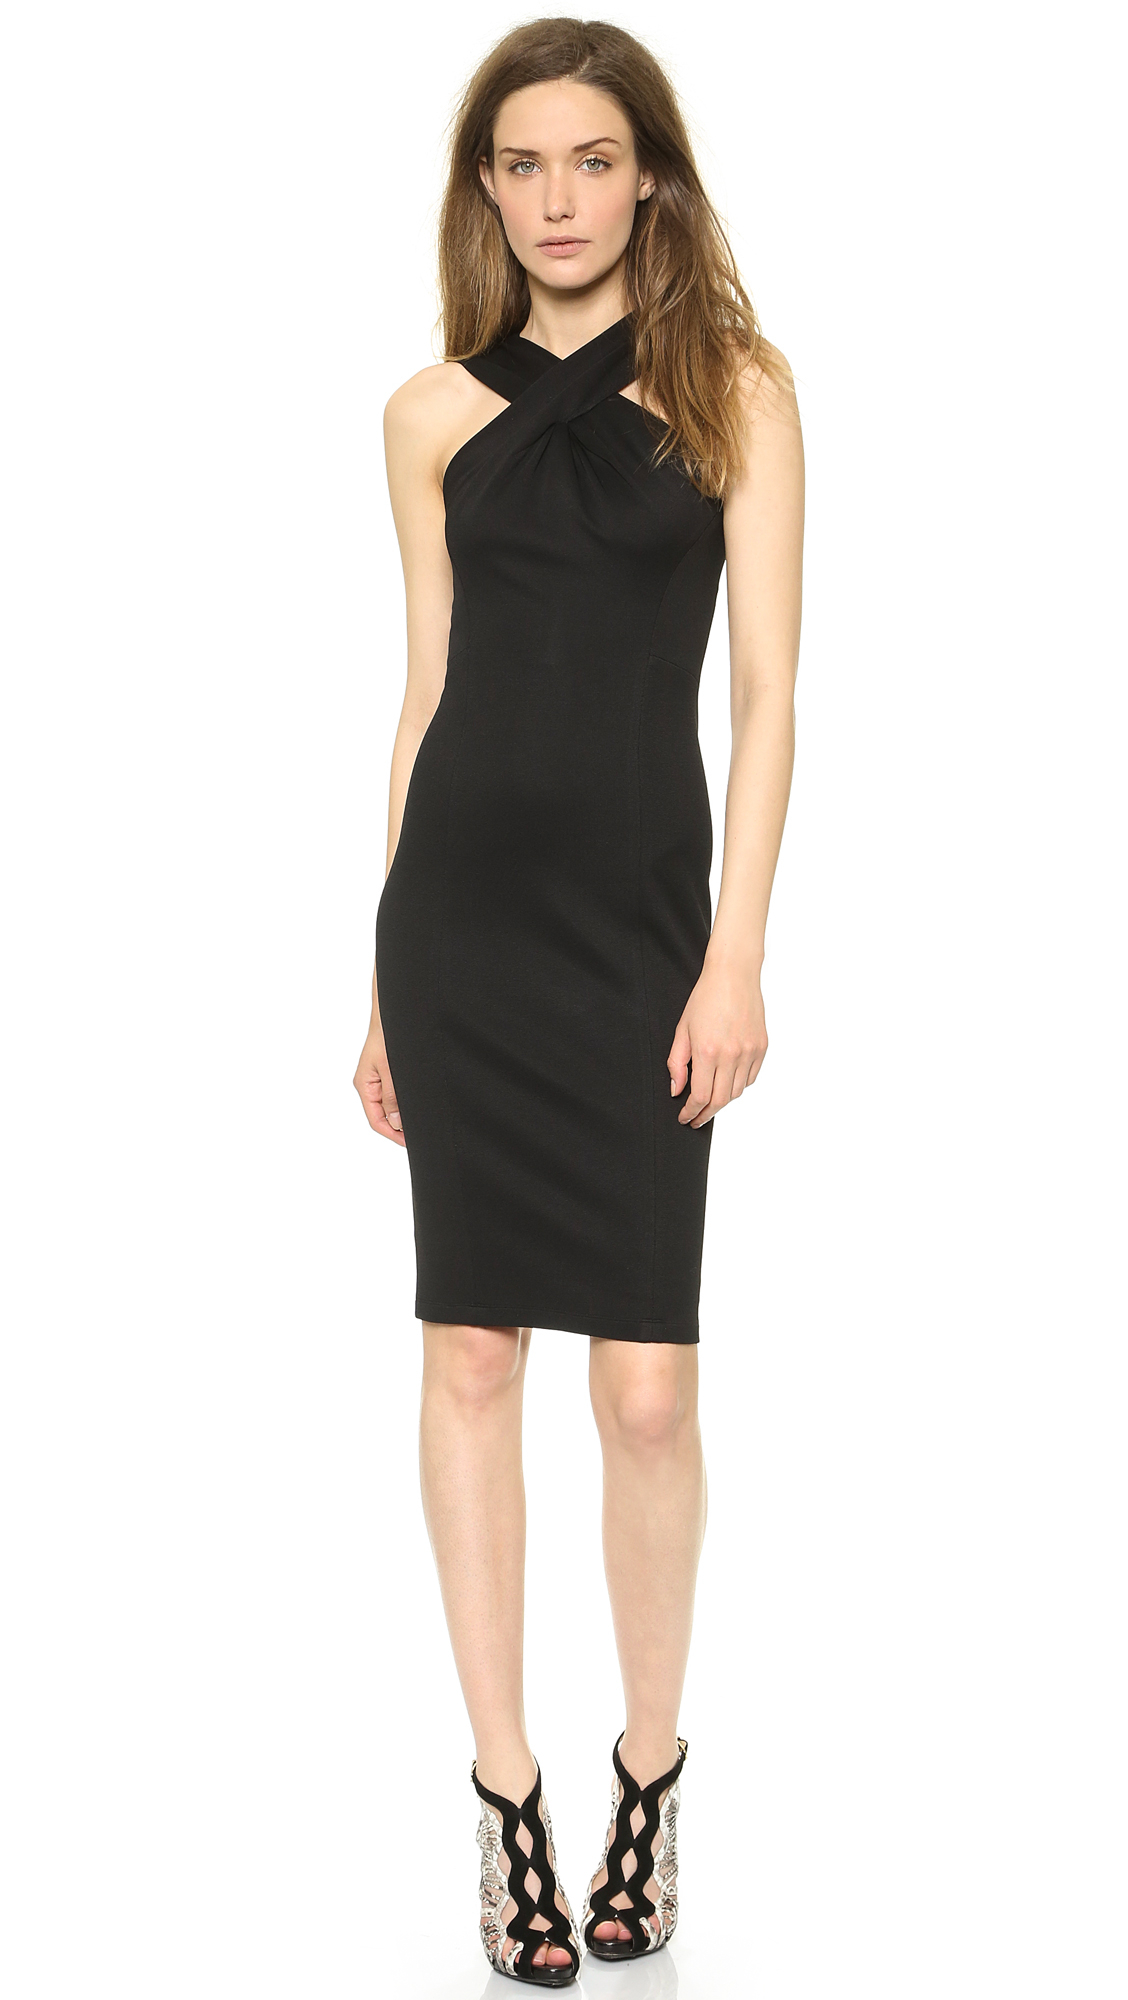 Donna karan new york cross drape sheath dress black in for Donna karen new york